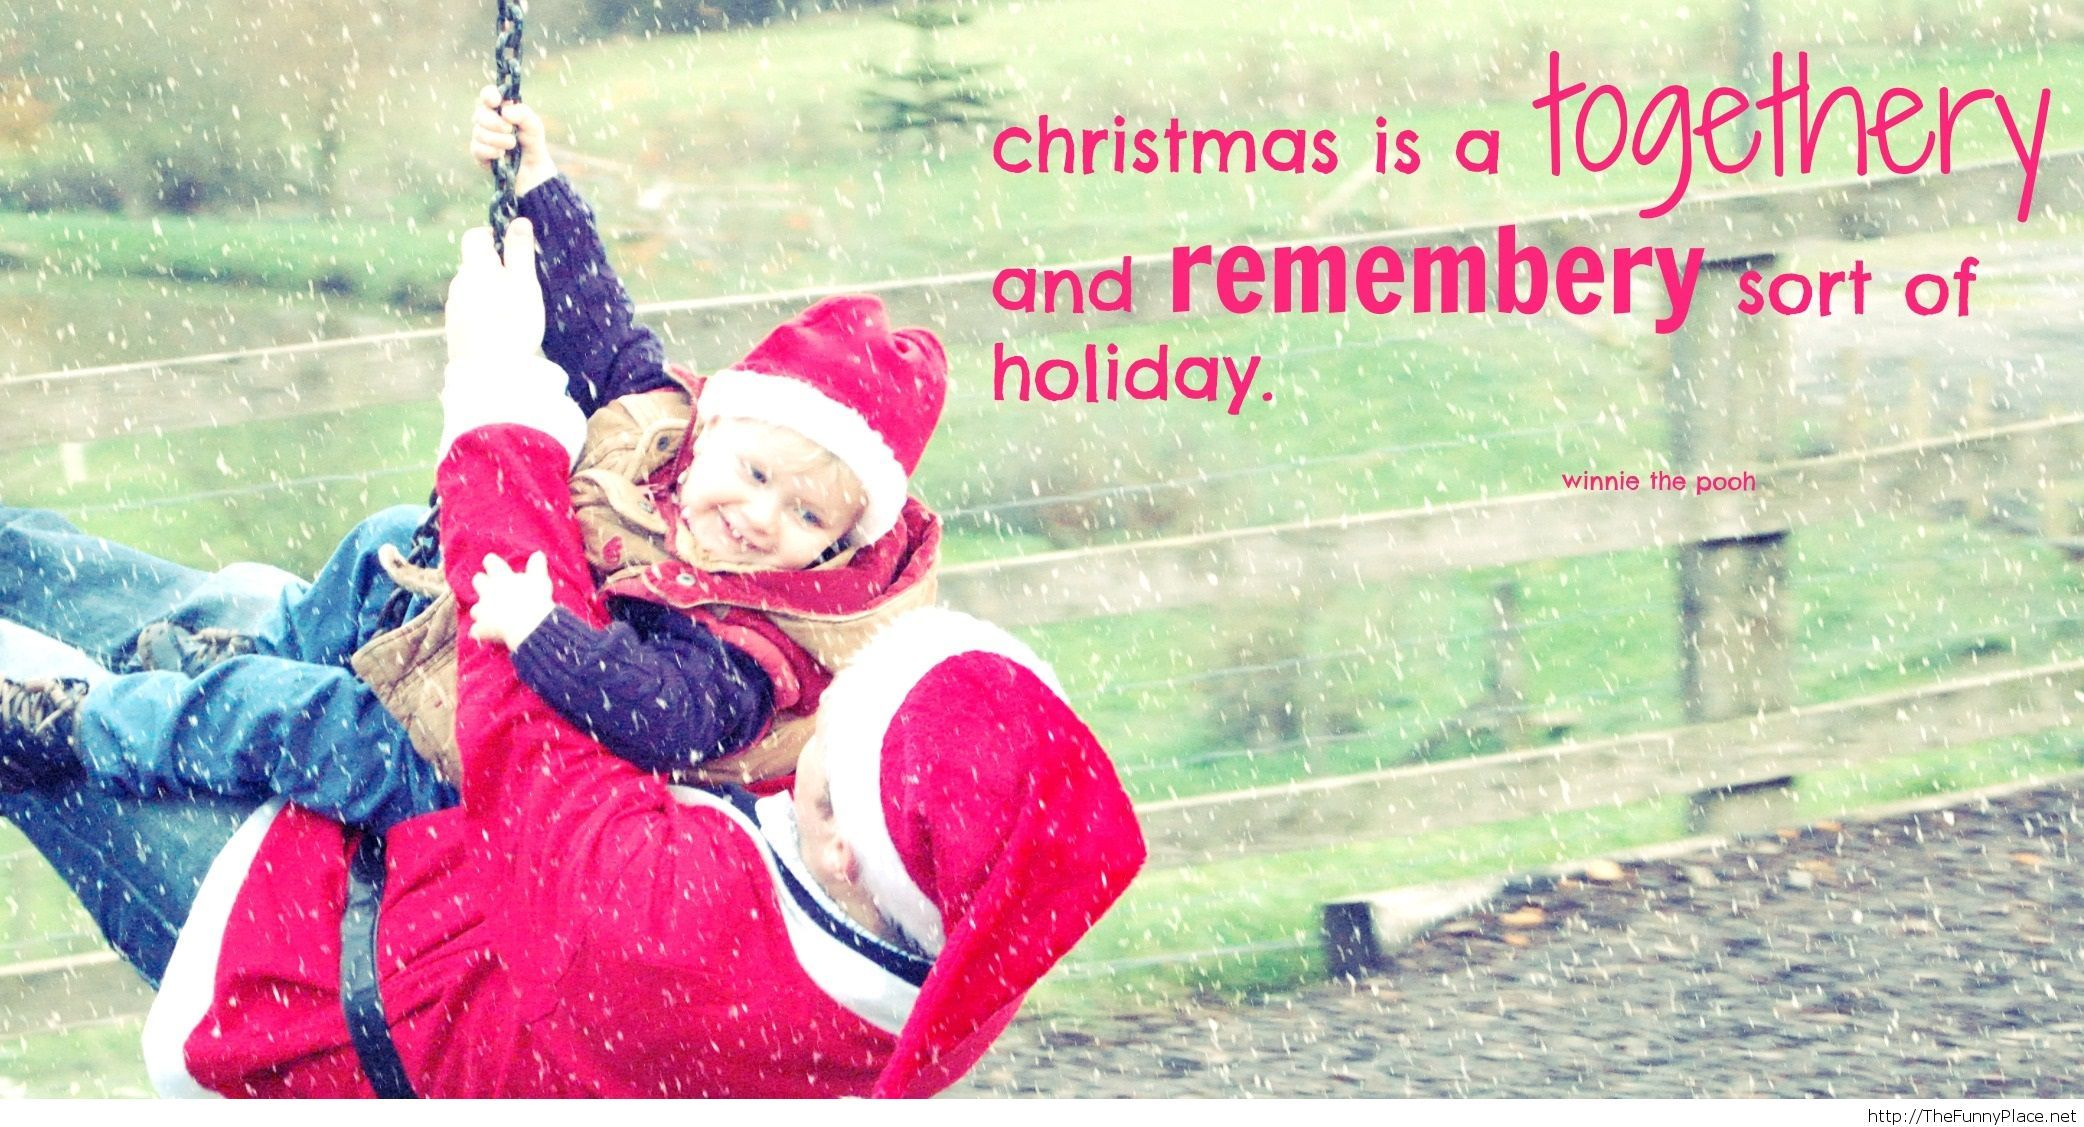 Christmas quote with image of a family